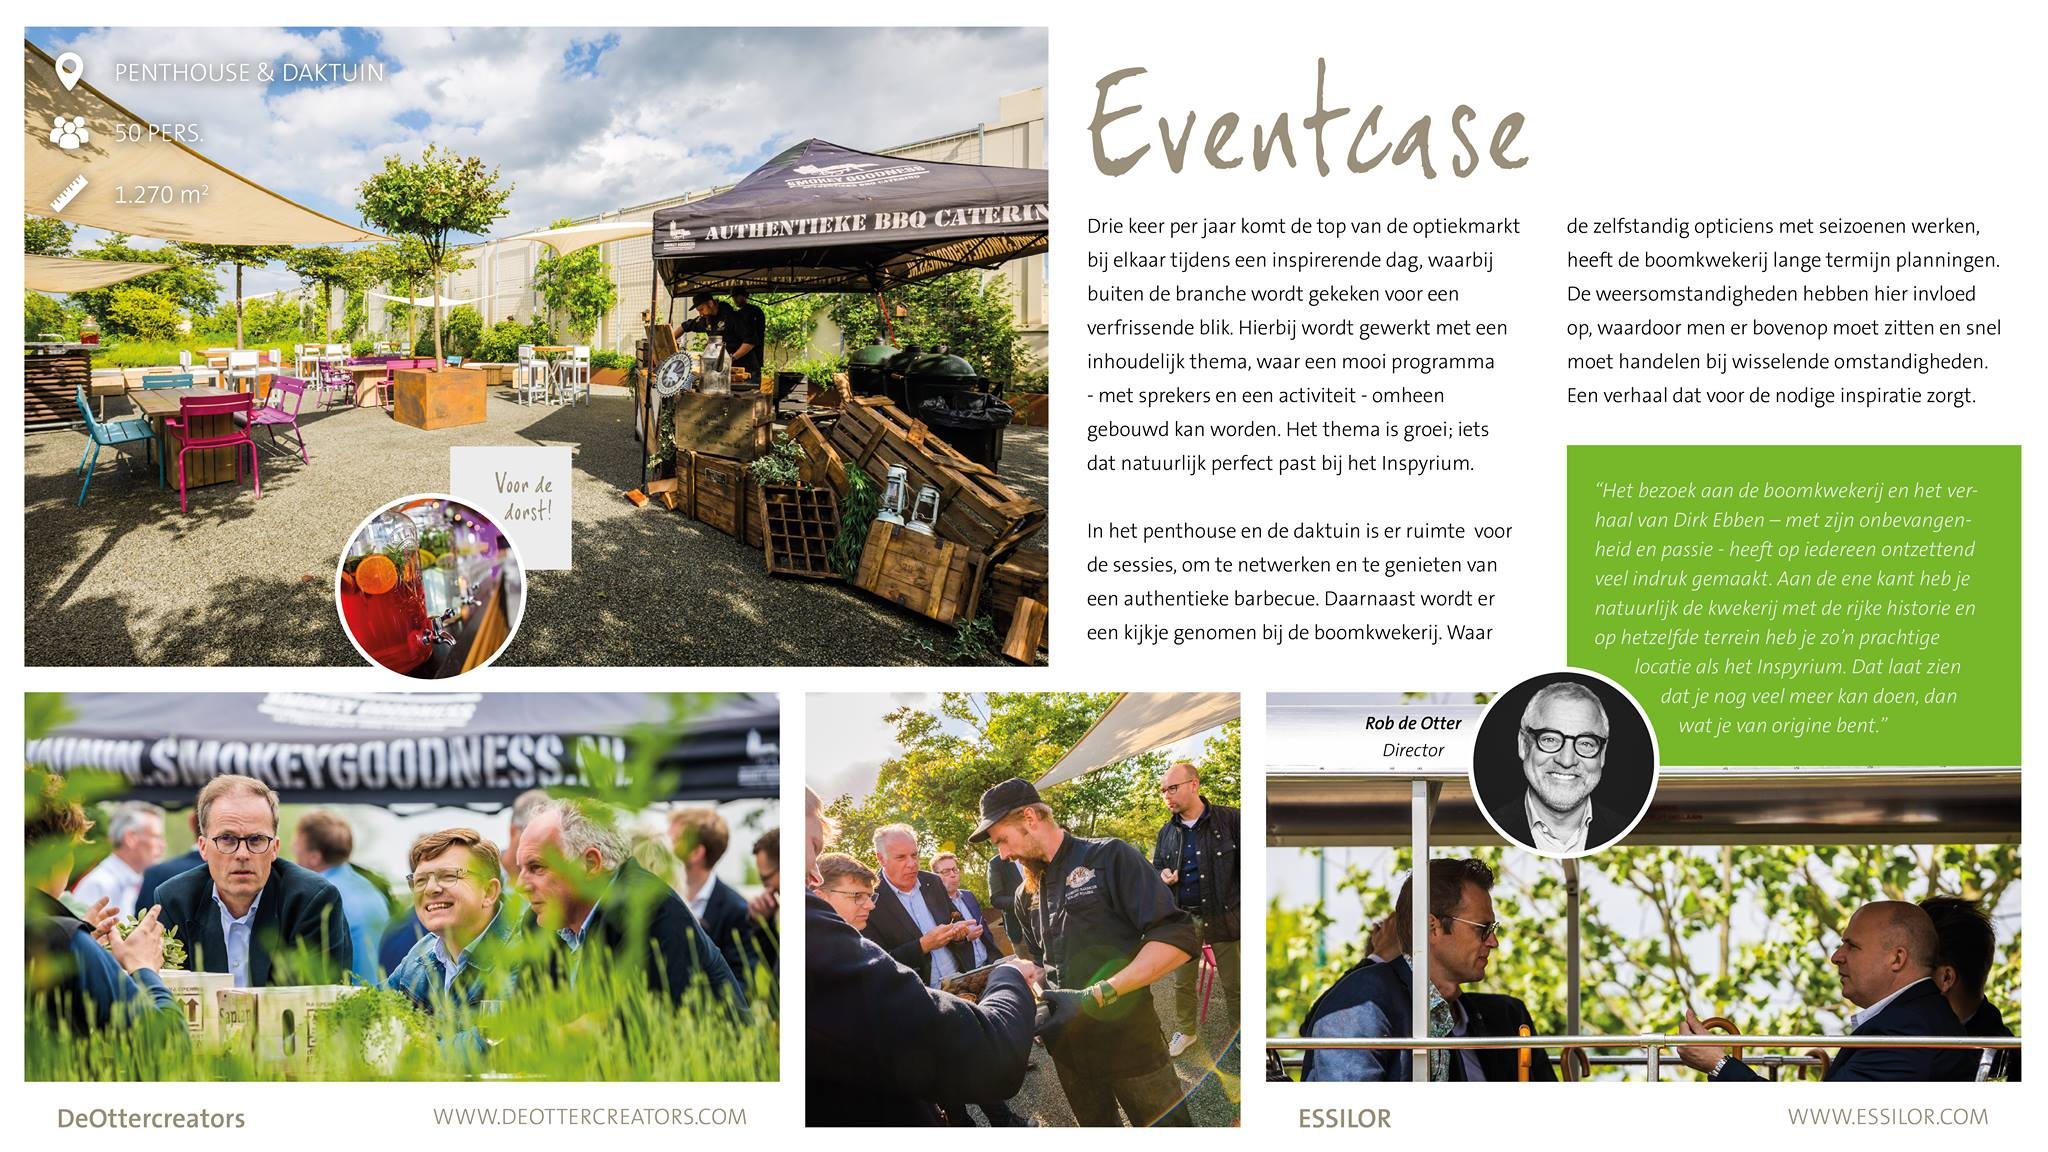 In de Eventcases nemen we …